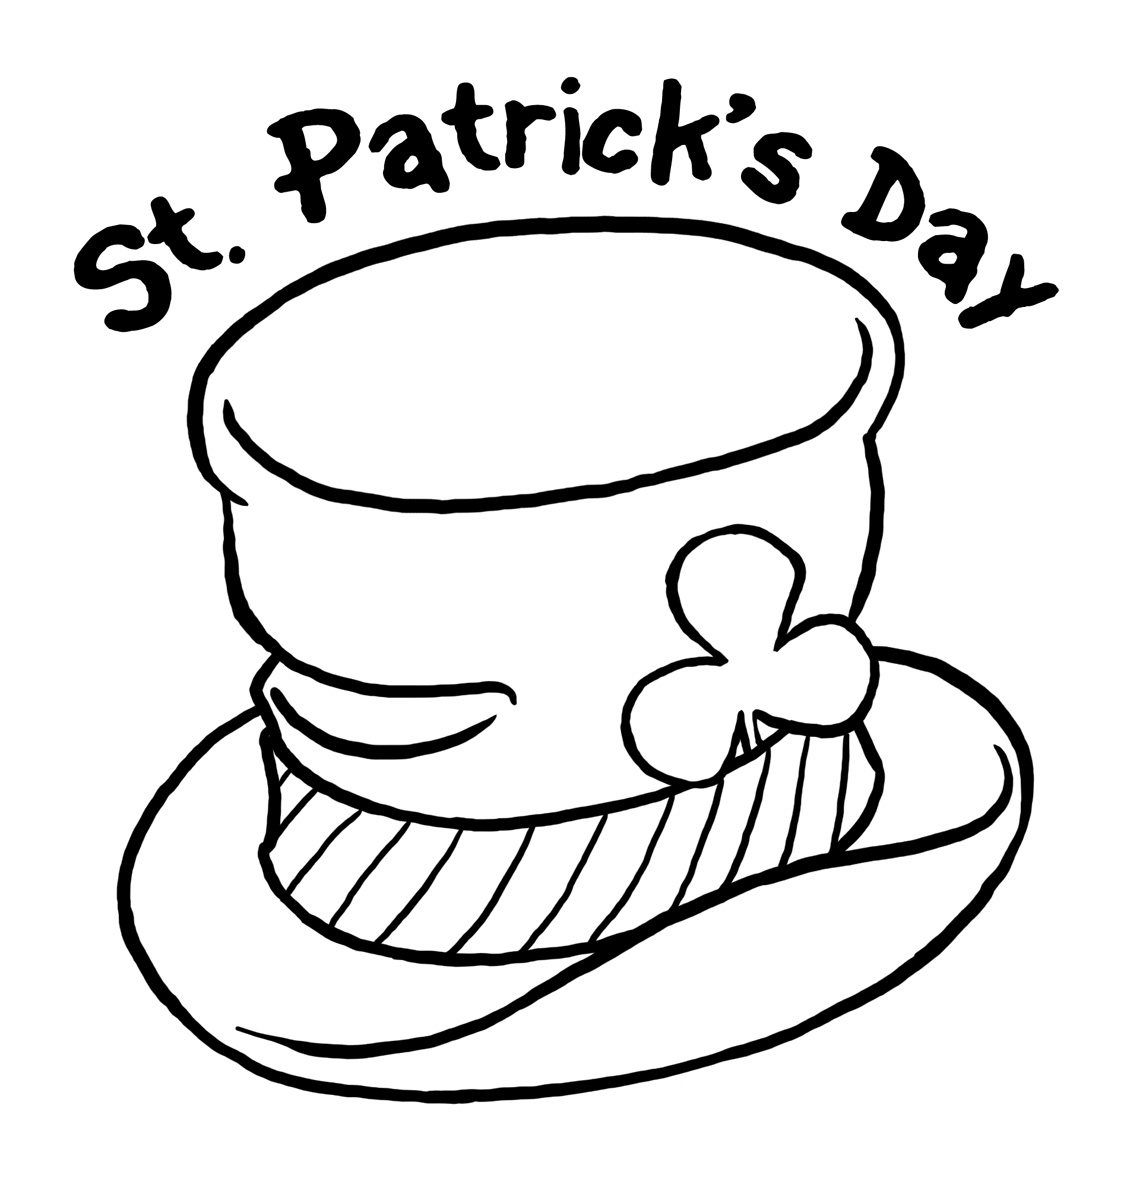 Free St Patricks Day Drawings Download Free Clip Art